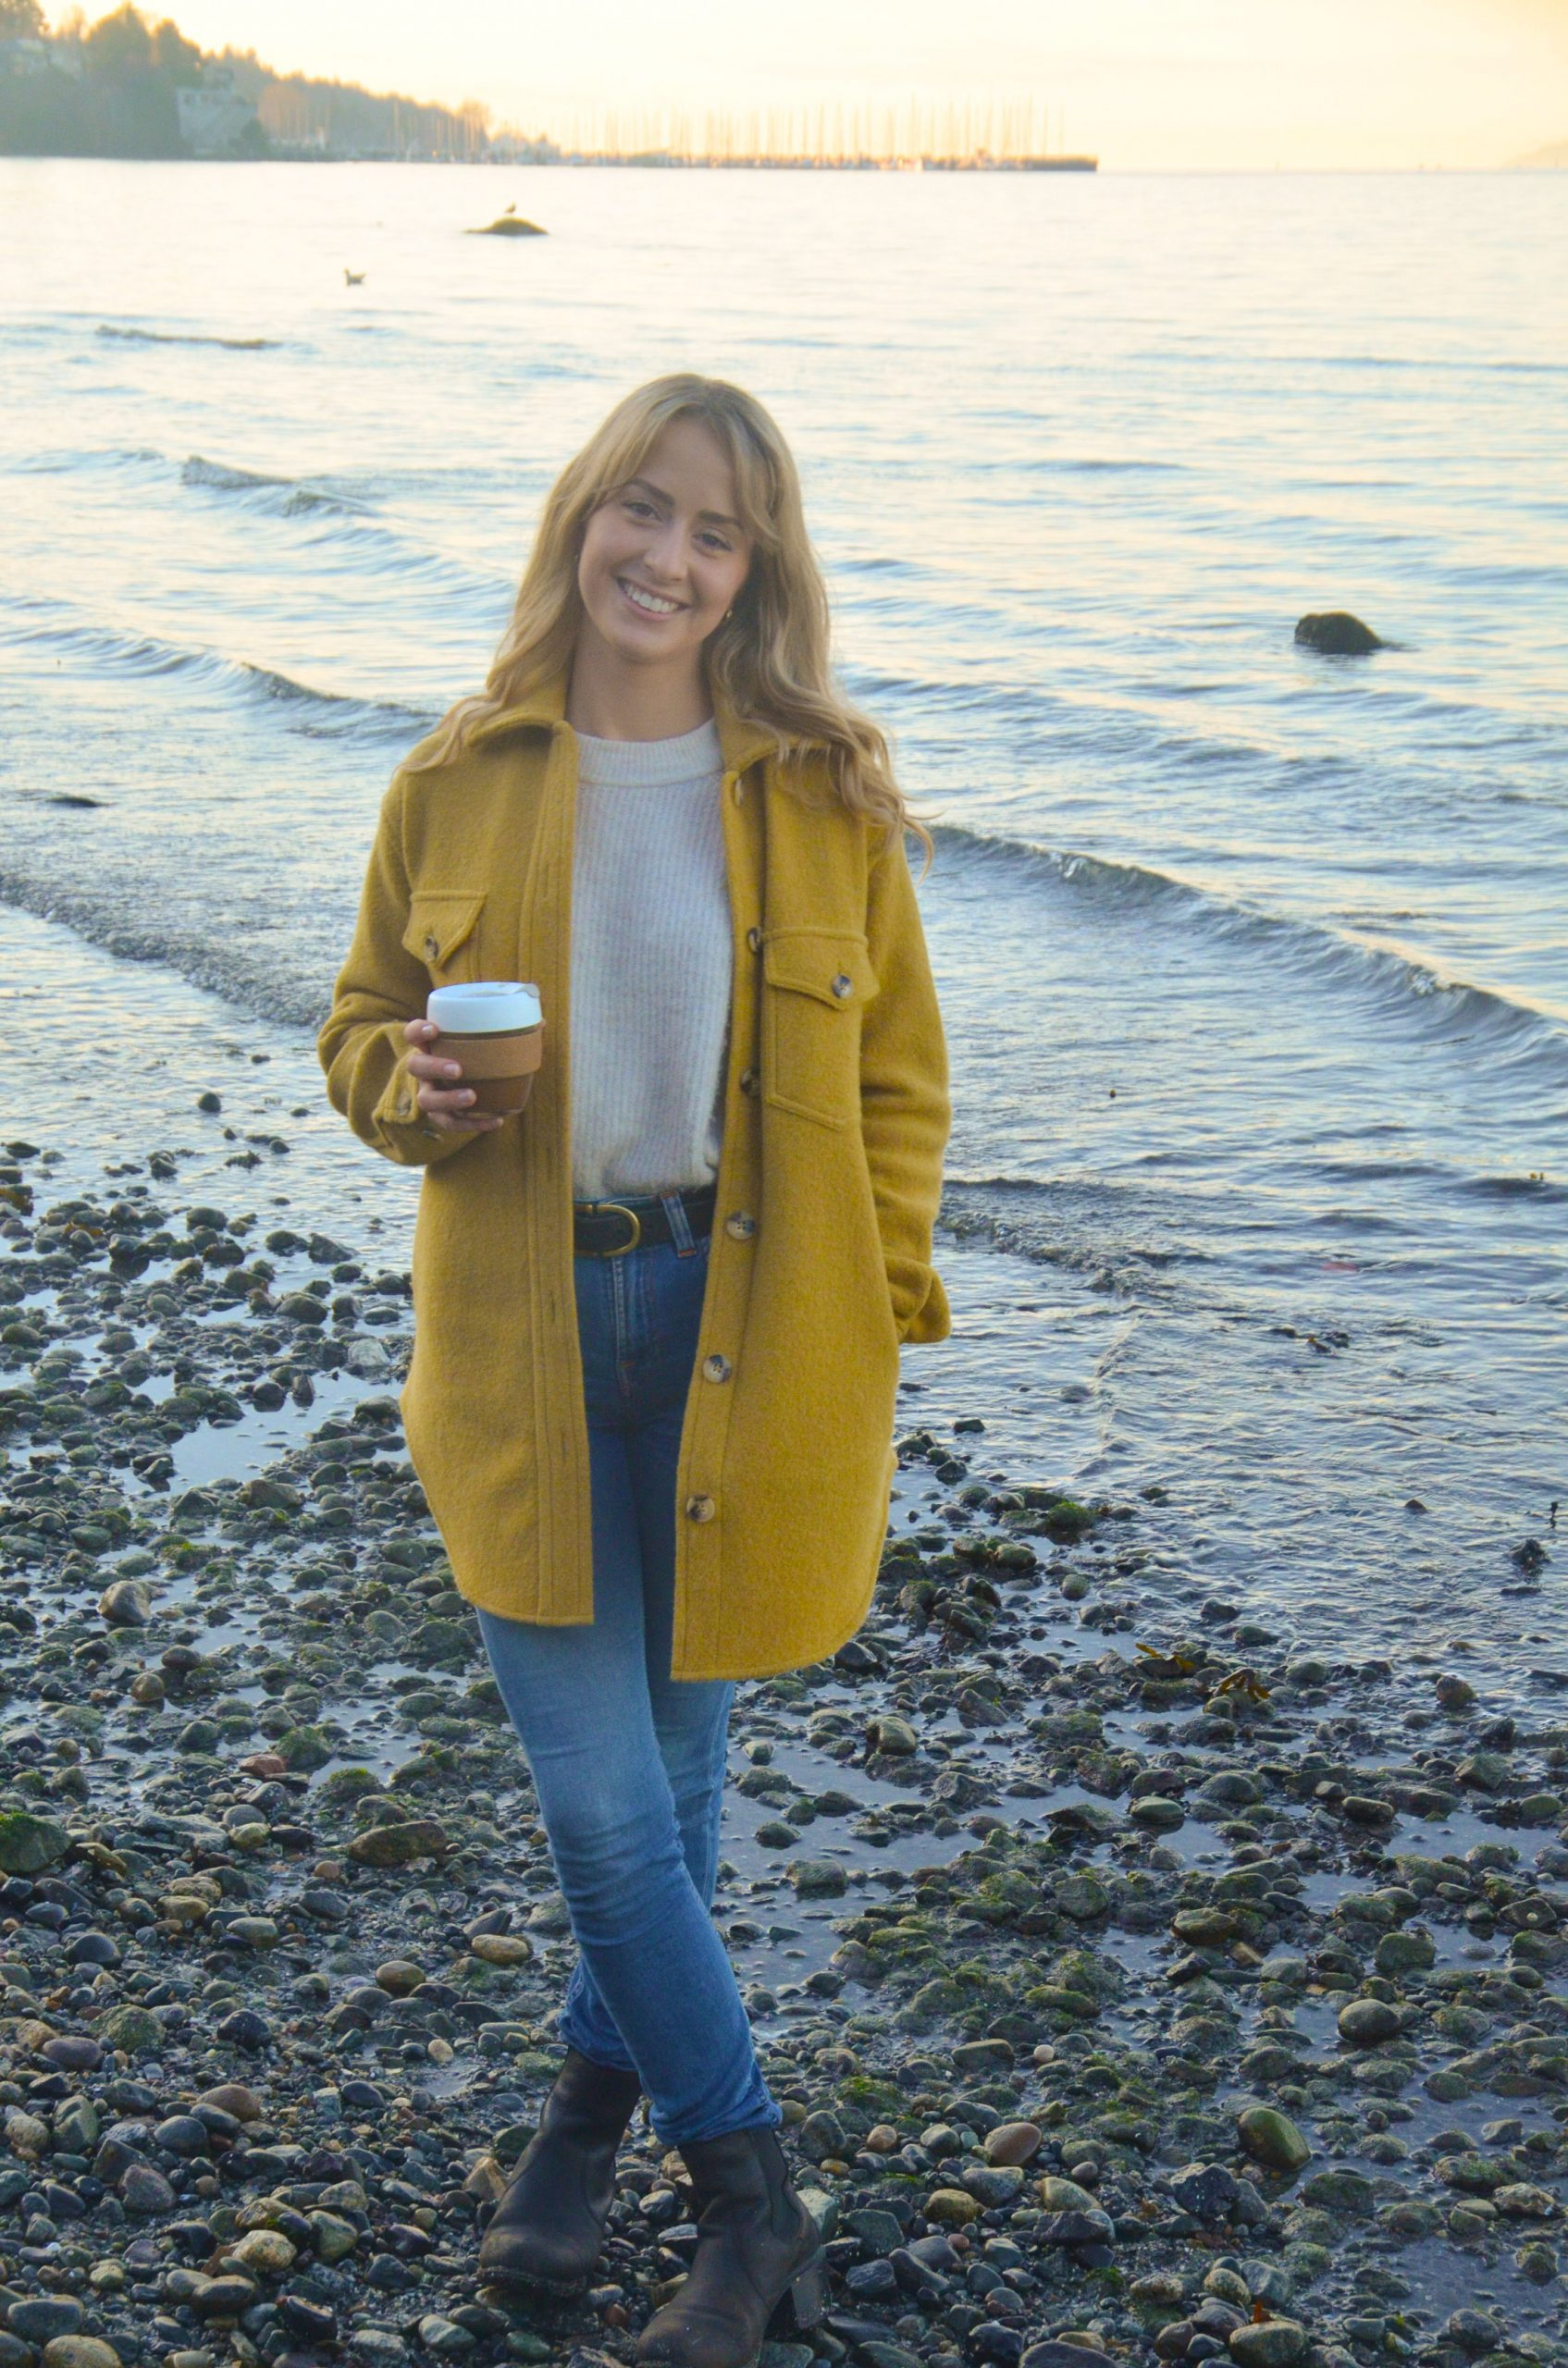 Photo of fleck founder Jazmin Welch in a yellow overcoat with sunshine coming behind her blond hair.